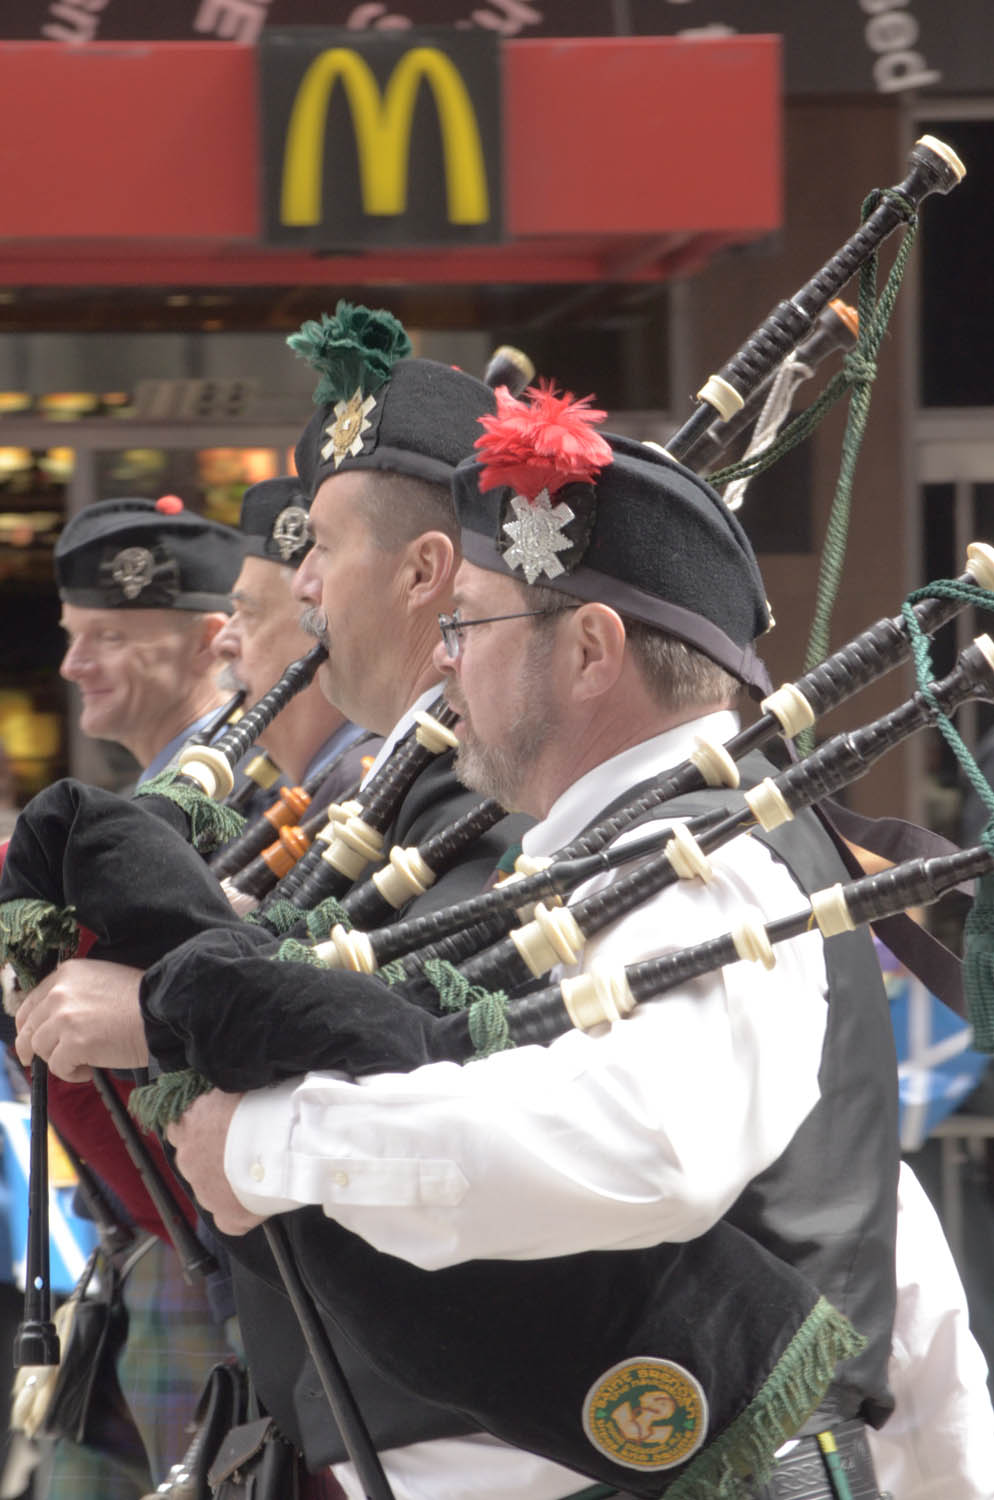 Scottish parade